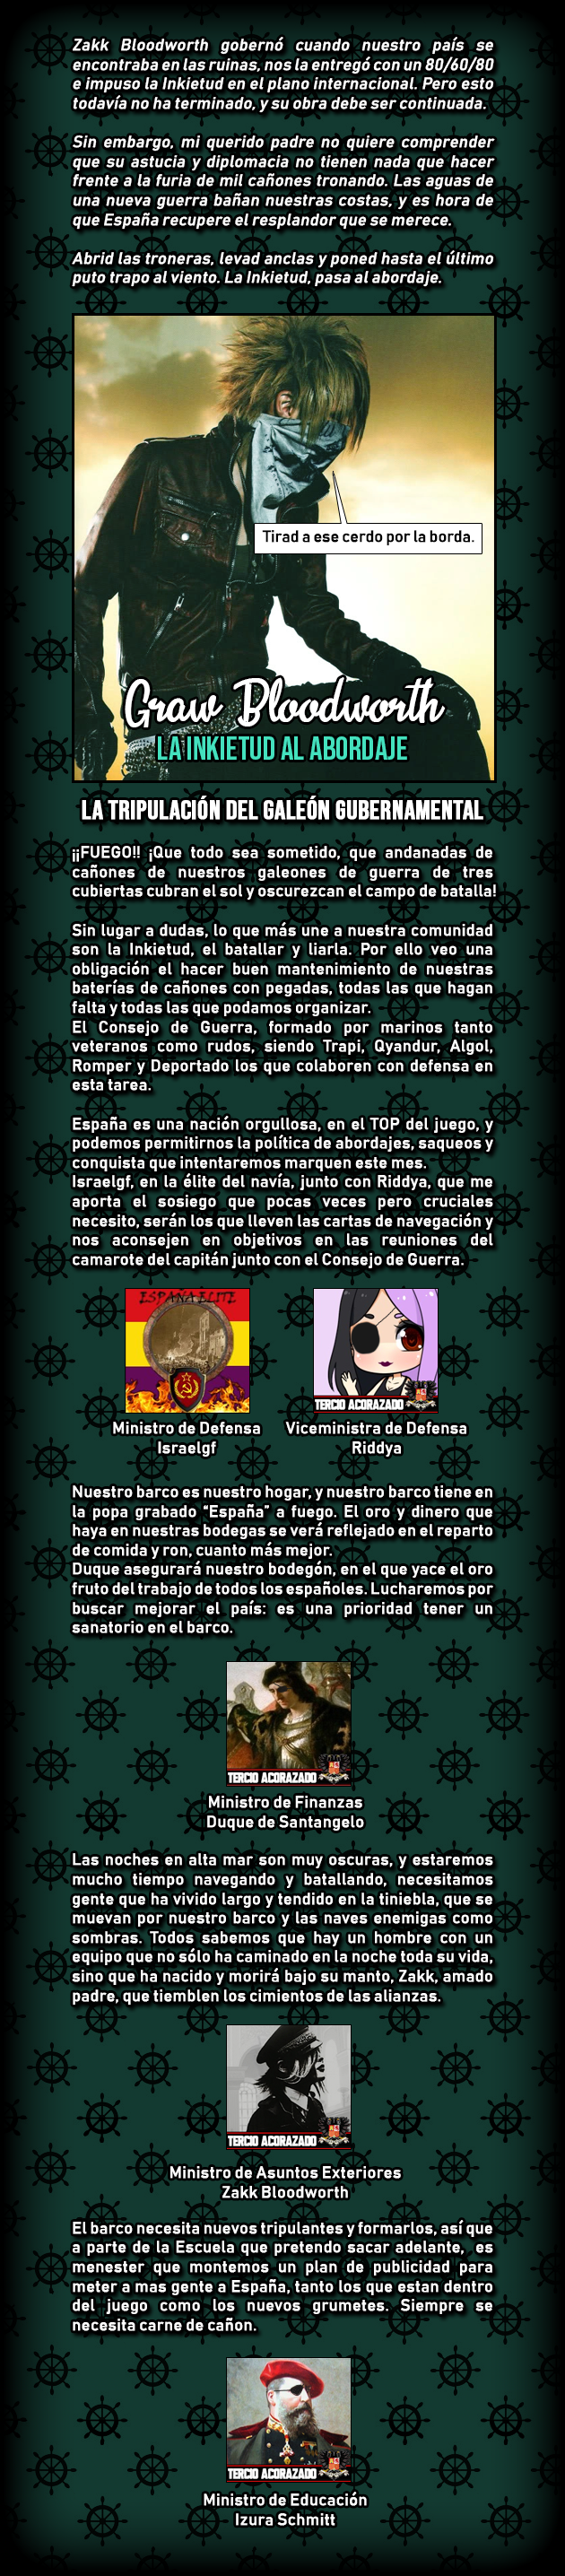 https://i.ibb.co/g3B1d88/candidatura-graw.png